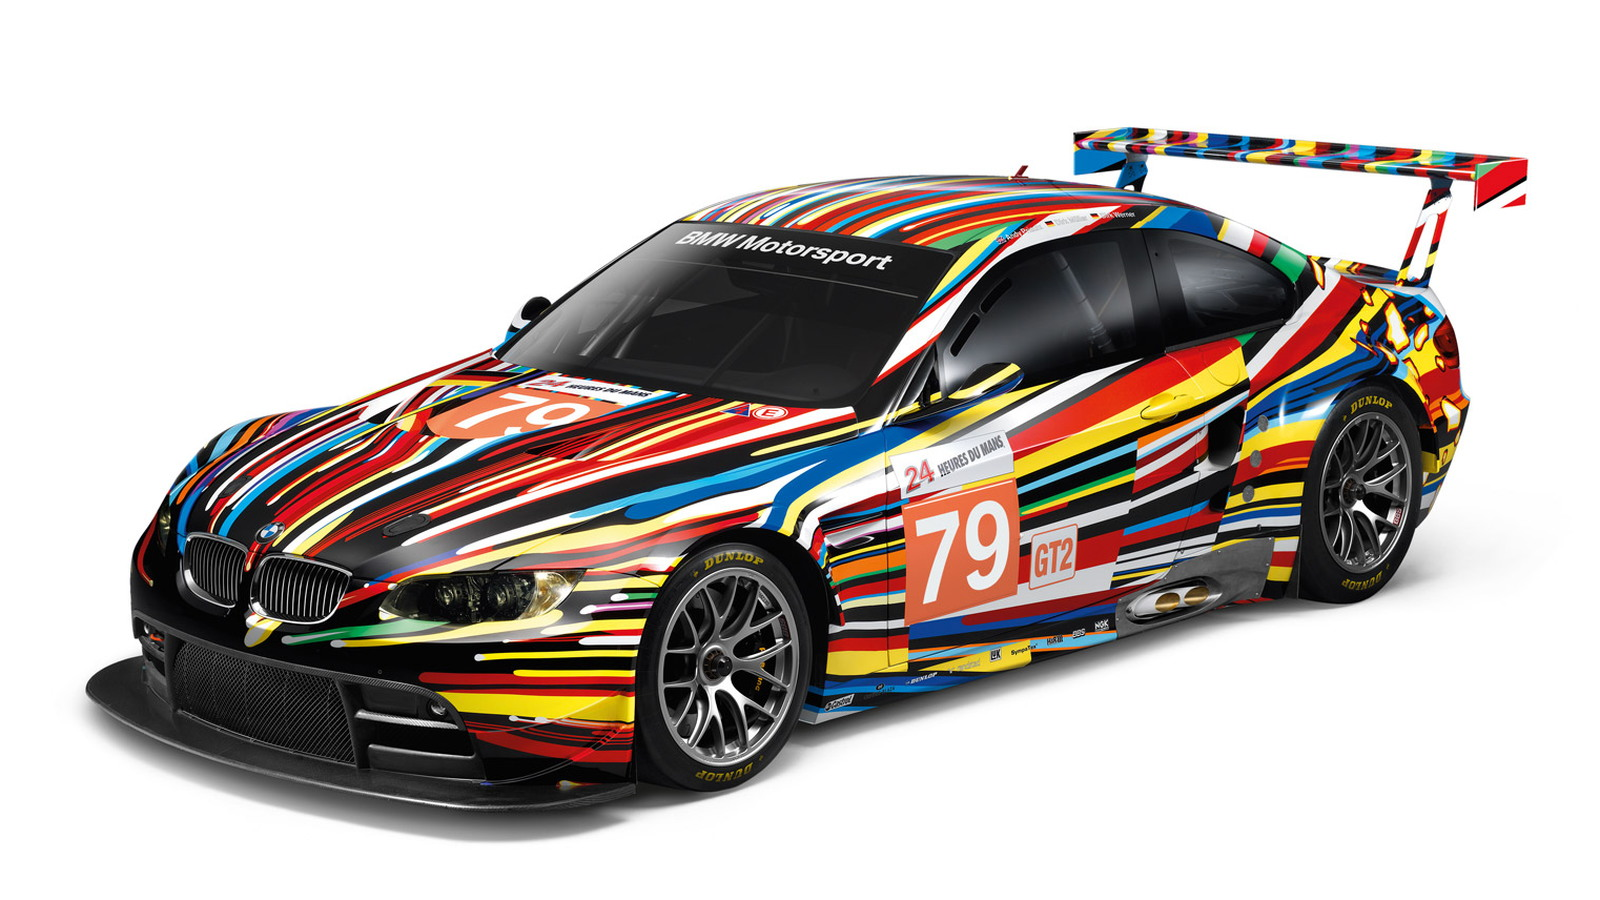 Jeff Koons BMW M3 GT2 Art Car 1:18 scale model